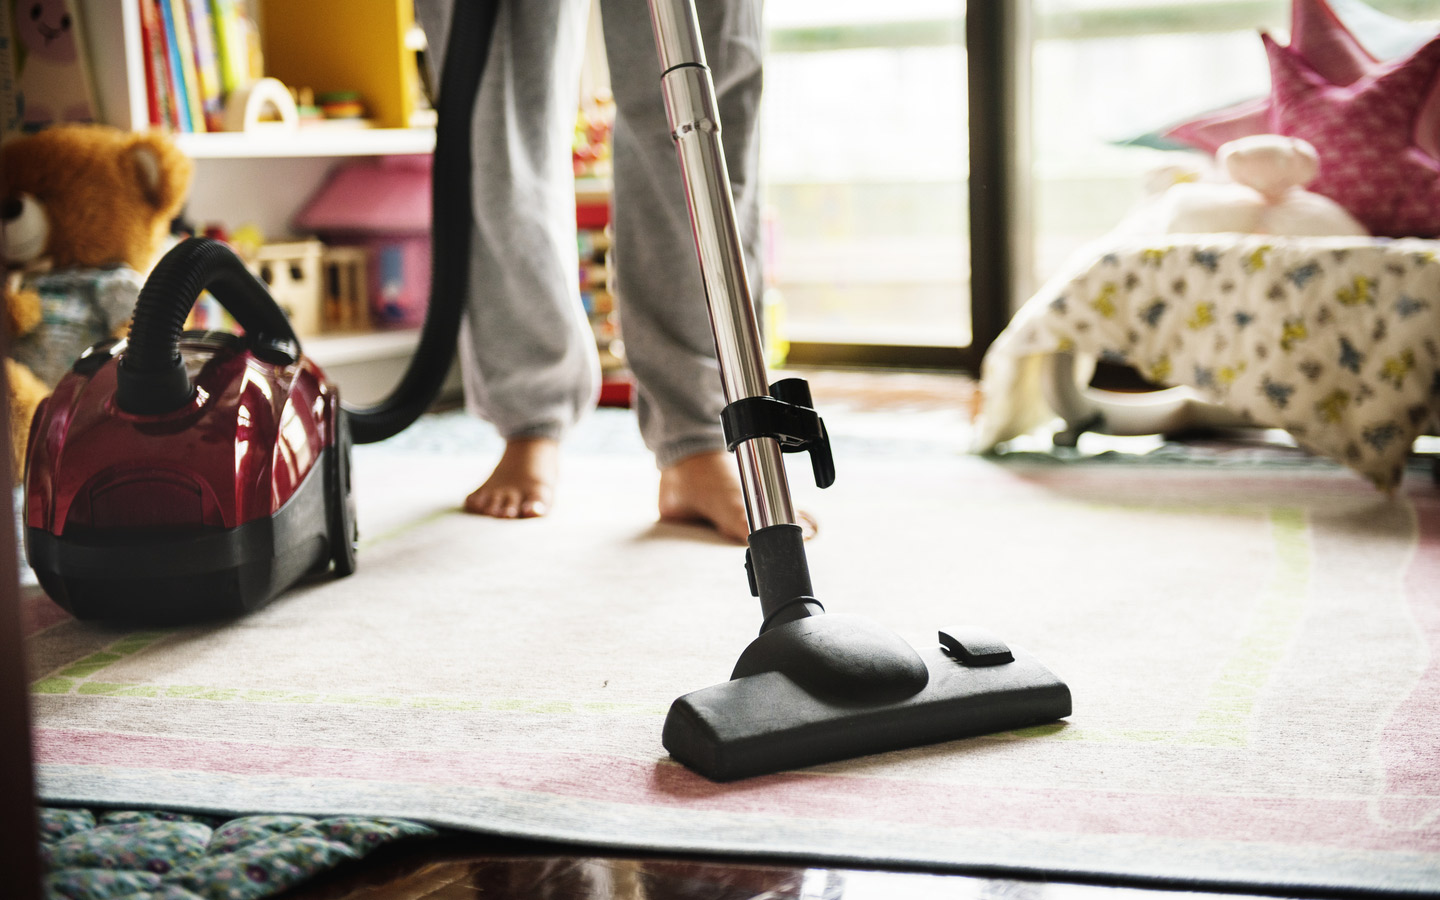 Clean the house before going on vacation